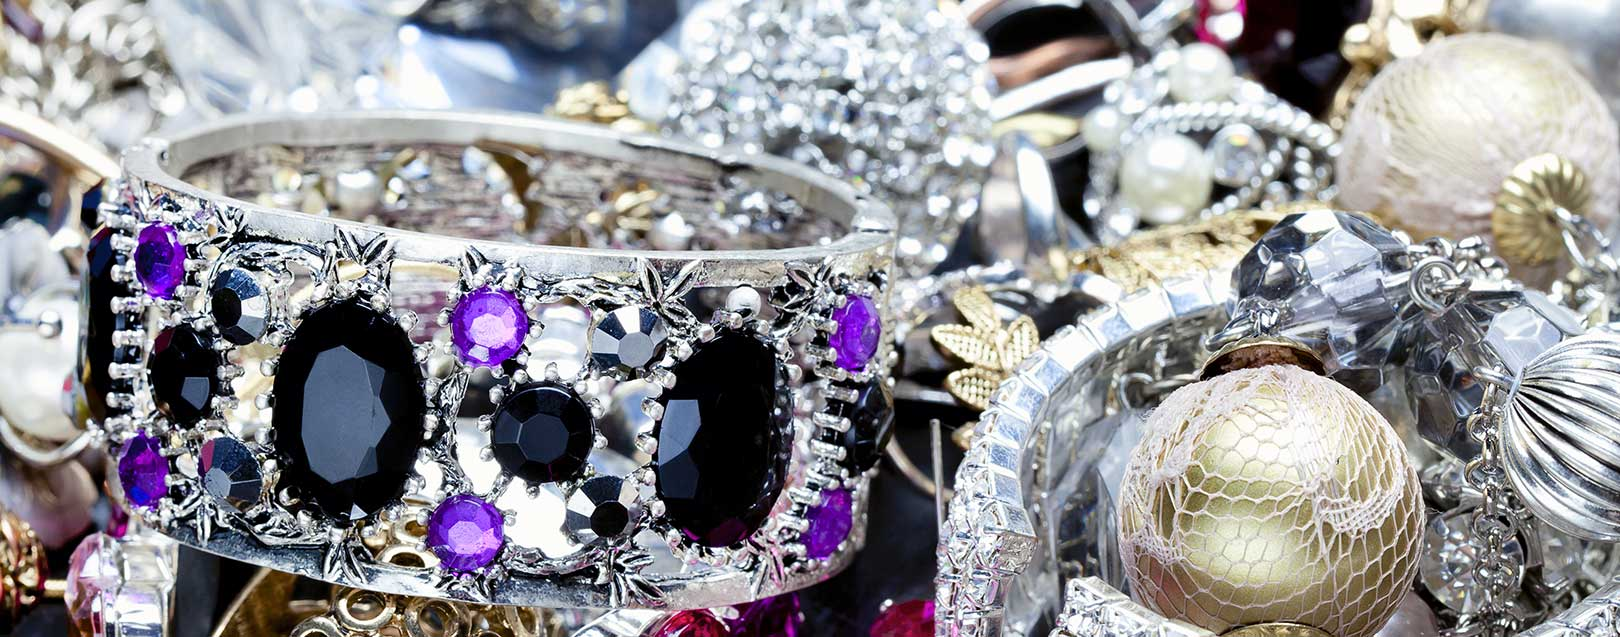 Ind-Ra predicts negative outlook for diamond exporters in FY'18